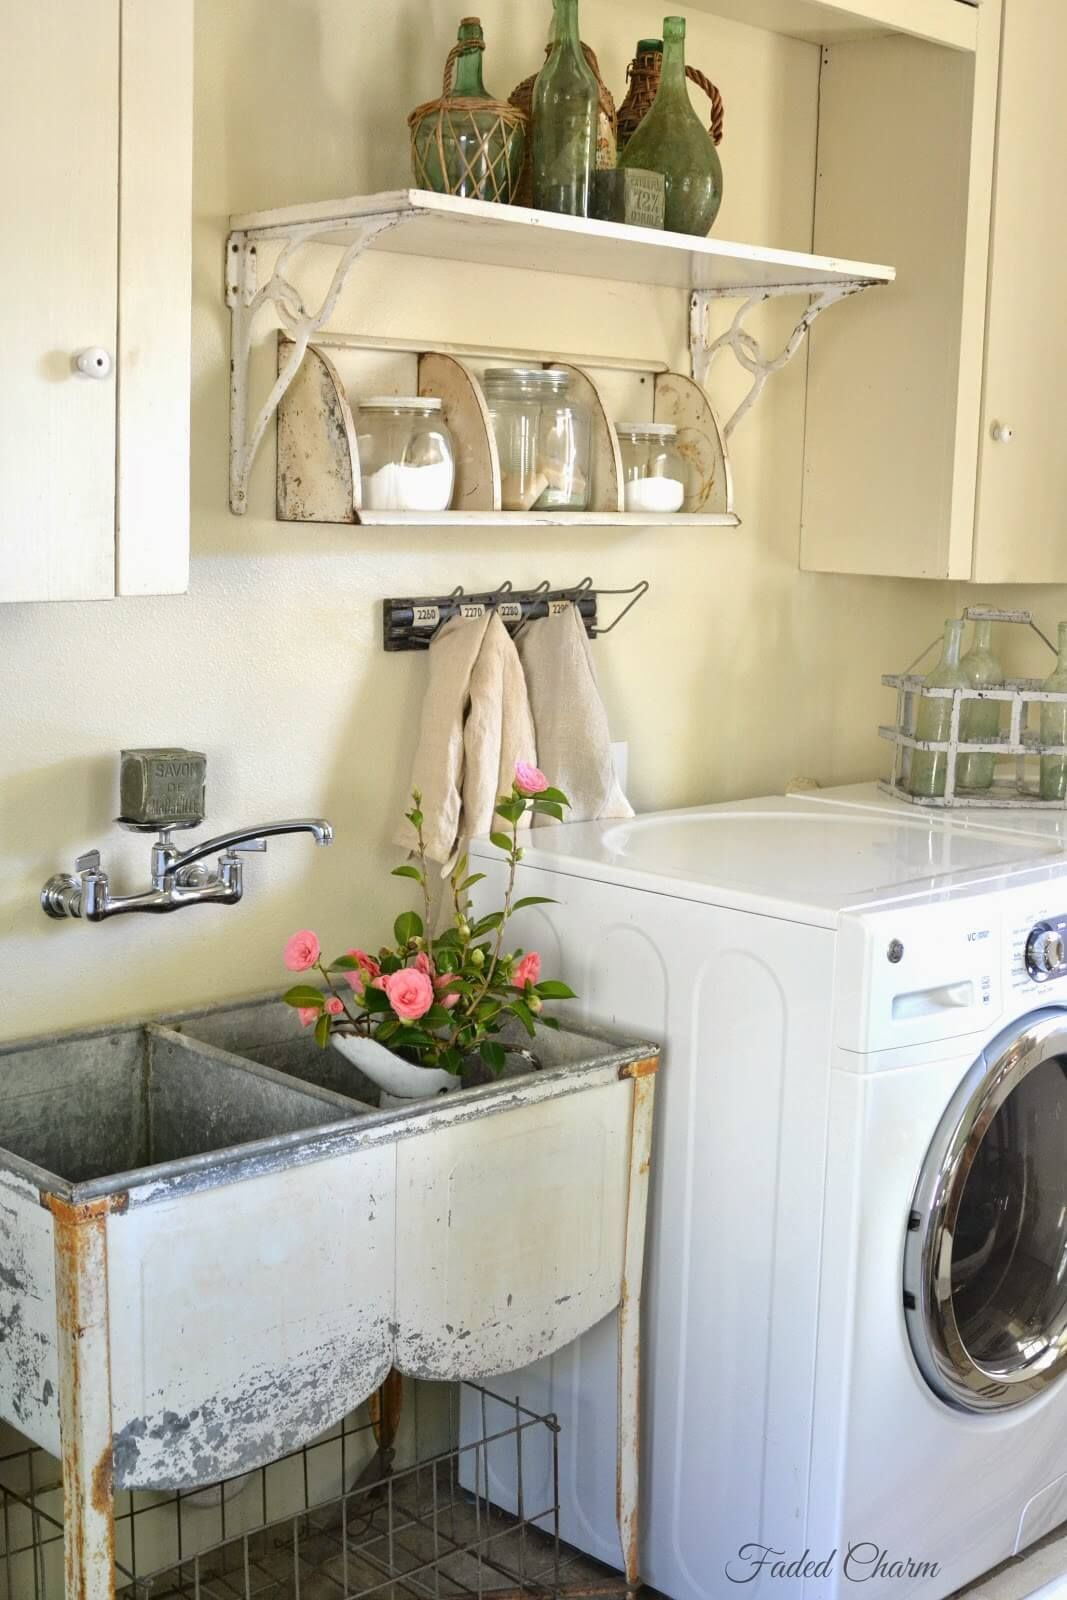 Antique Wash Tub Laundry Sink Favorite Places Spaces Pinterest